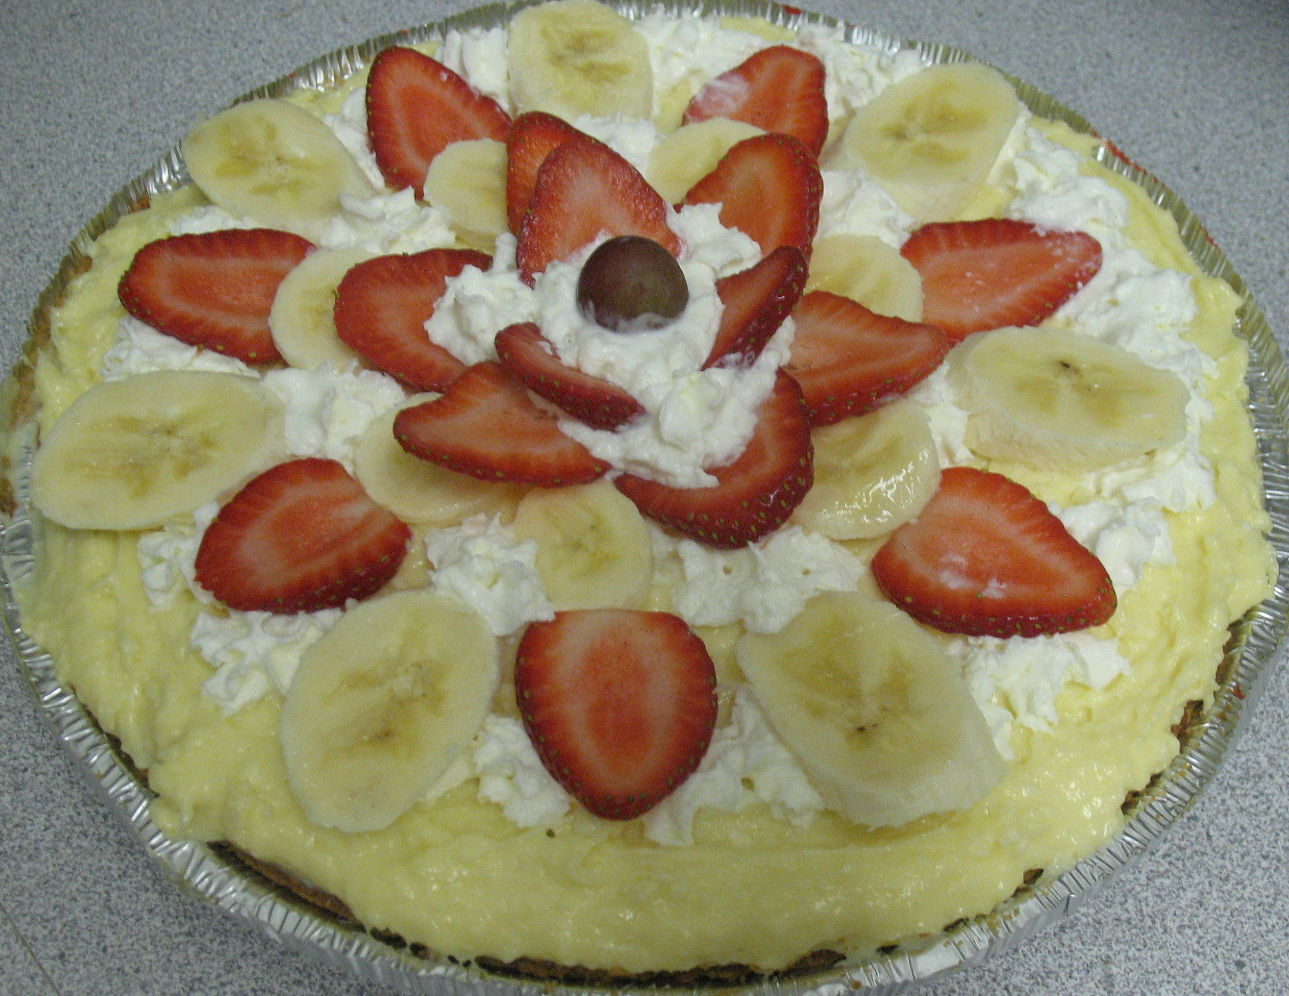 Strawberry Banana Pie